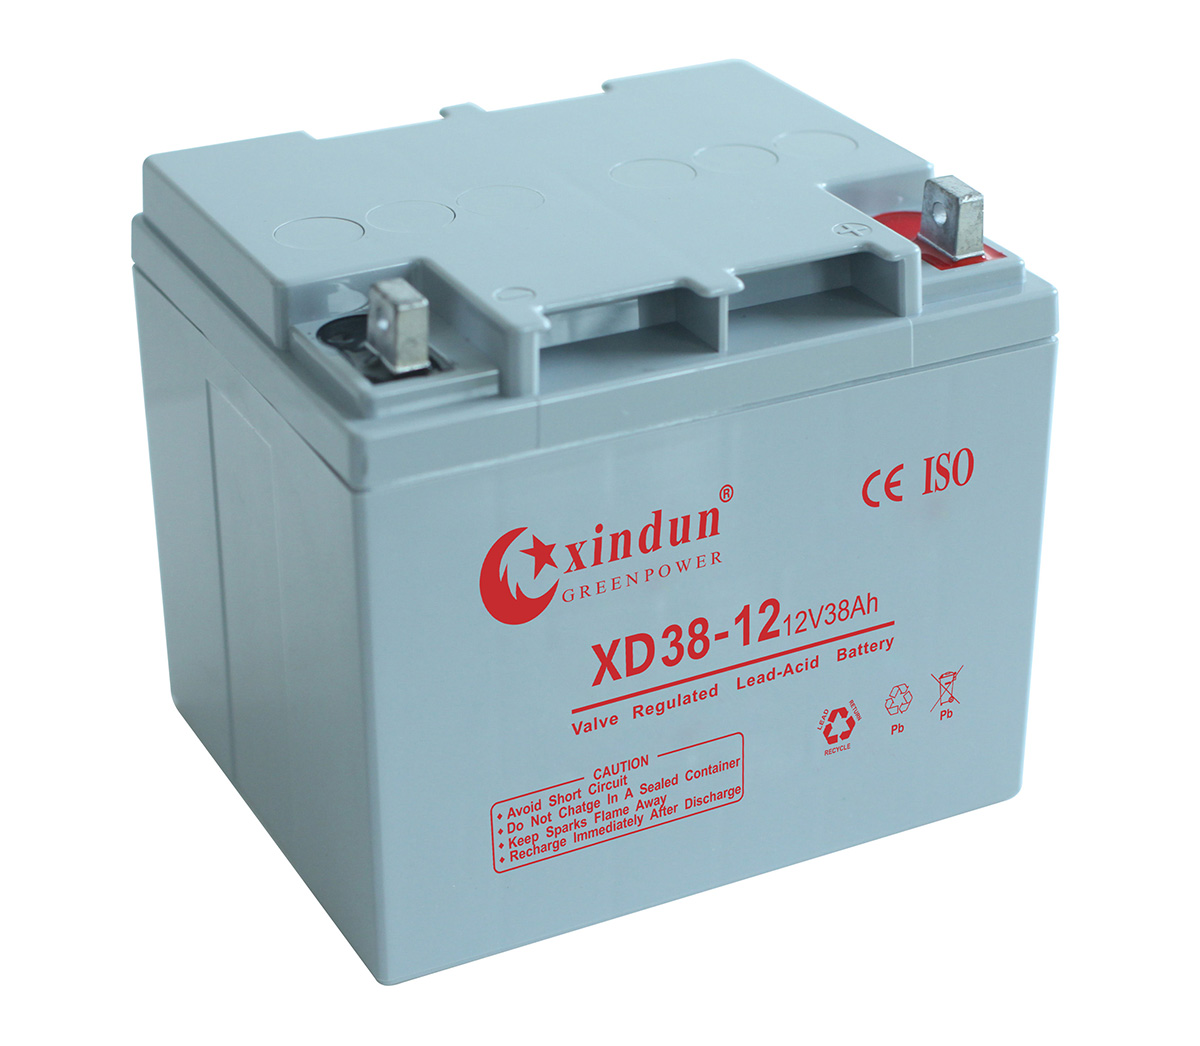 XD38-12 Battery (12V38Ah)